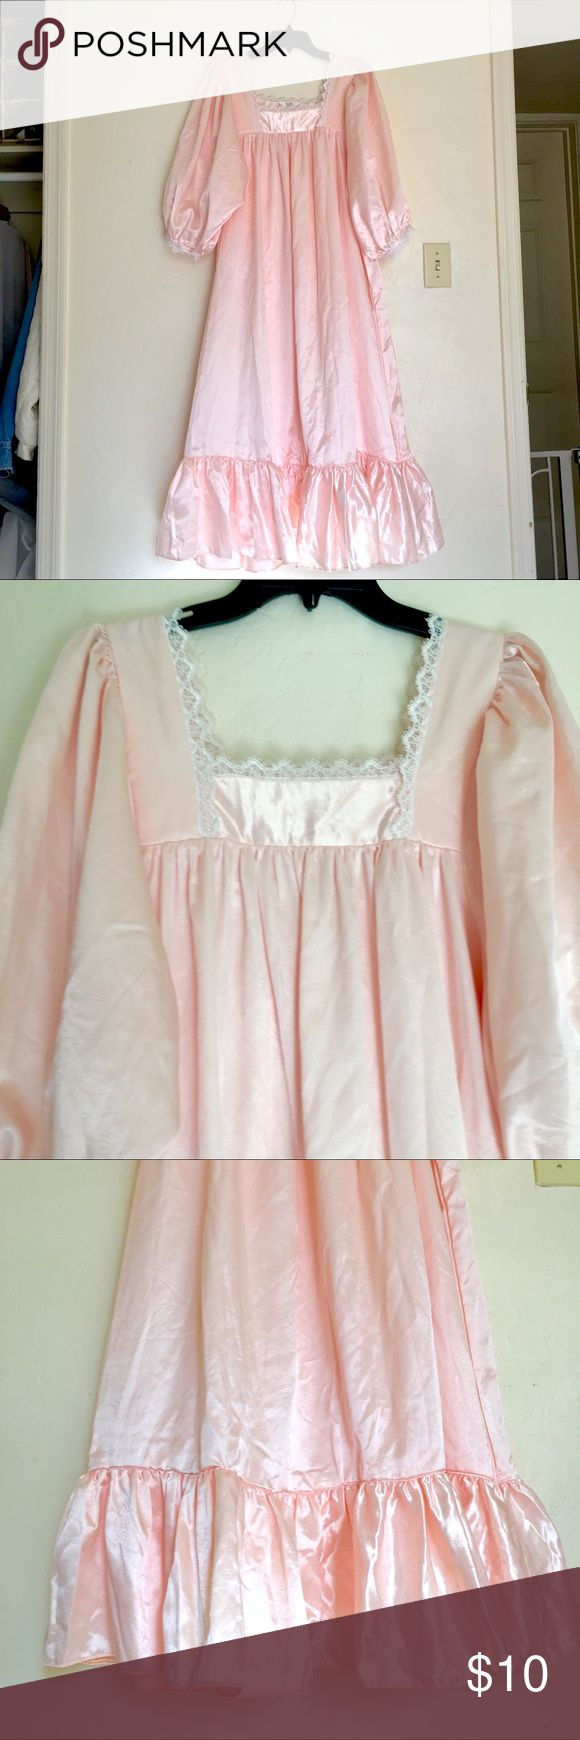 """Flannel Back Satin Nightgown Elbow Sleeves SzL $10 TJW, Size Large, Flannel Backed Satin Nightgown with Large balloon Gathered Elbow Length Sleeves, White picot lace trim, square neckline, full gathered skirt with 8"""" ruffle. Midi to Maxi length depending on height, very wide full skirt. Beautifully Romantic & Feminine! Excellent Condition. Measures 48"""" bust, 84"""" around at hem, 49"""" long from Shoulder. BUNDLE and SAVE TJW Intimates & Sleepwear"""